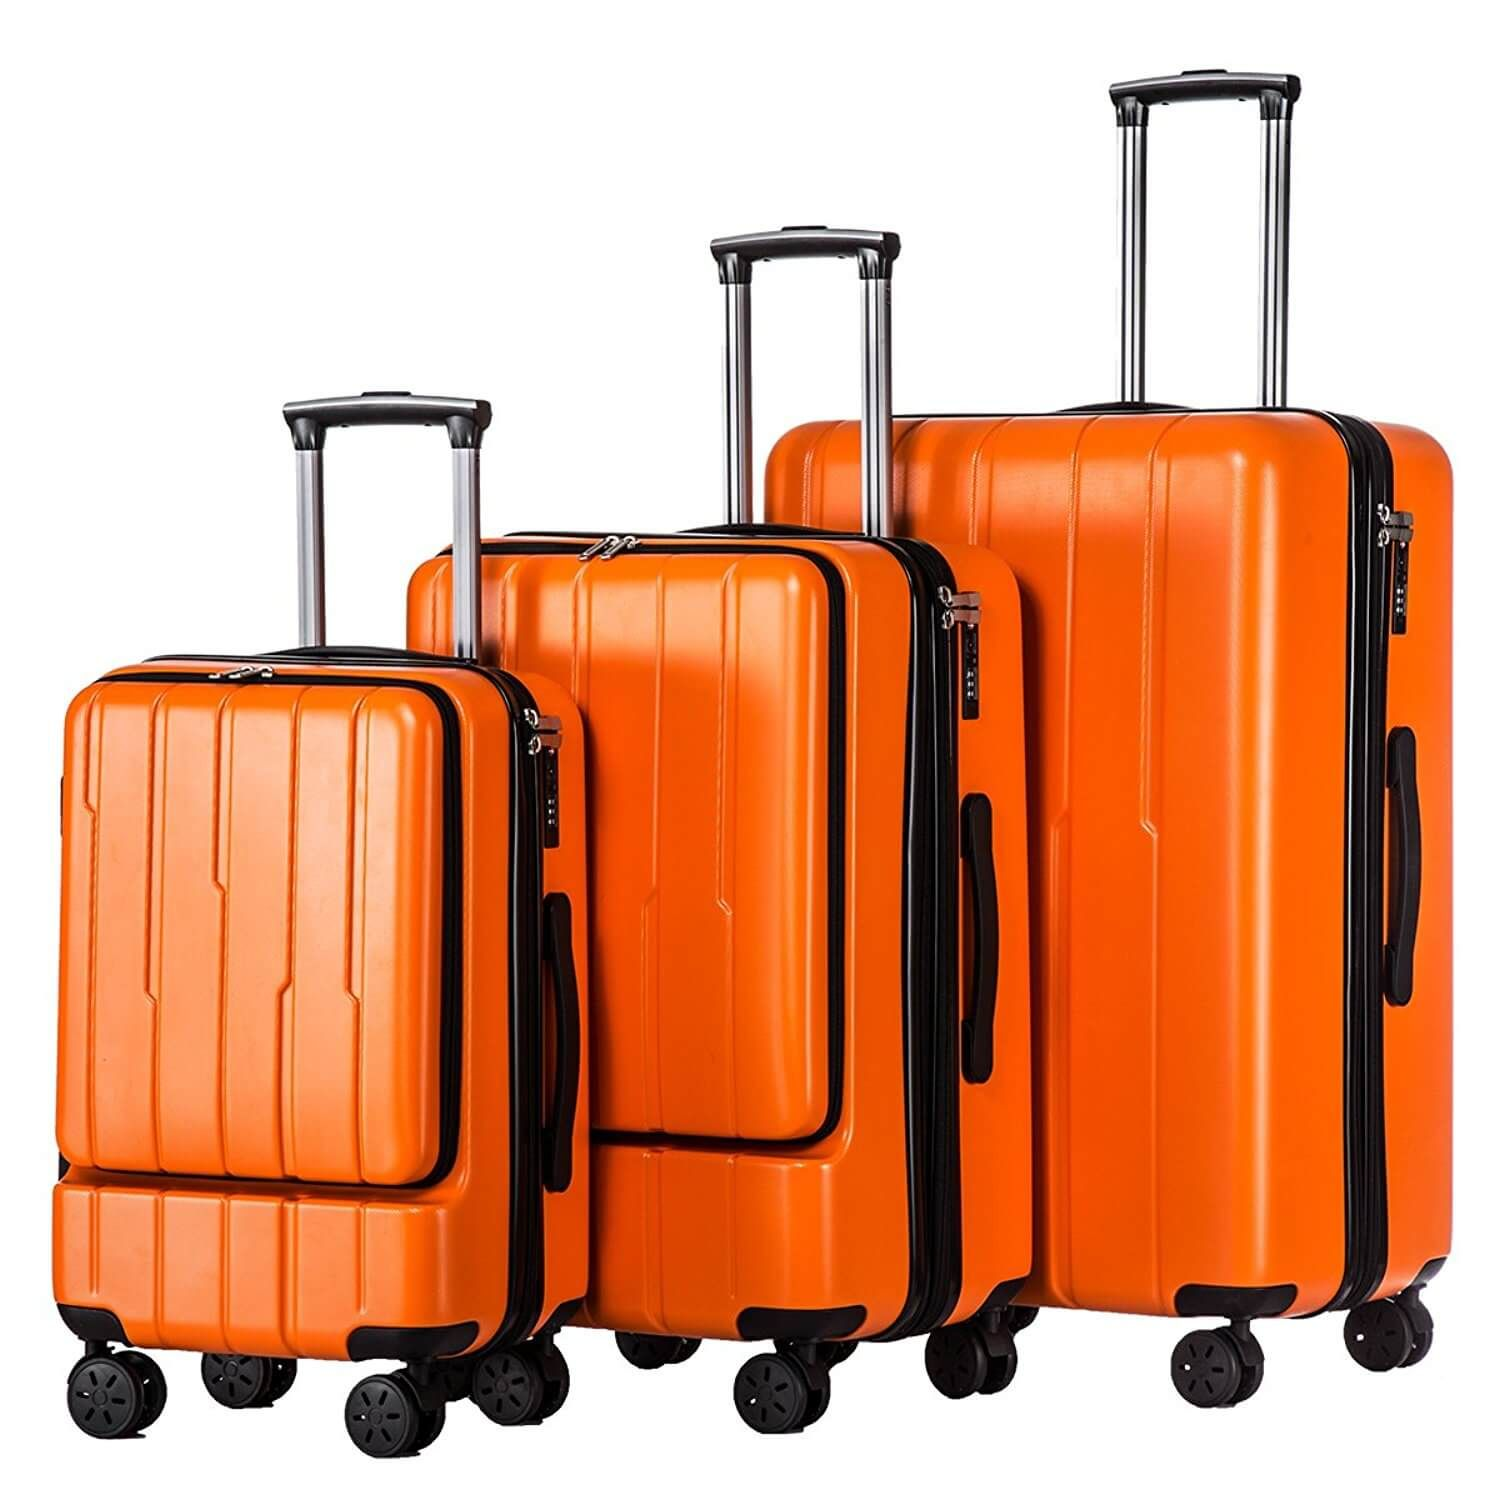 cf561b44f85e Family Luggage Sets: 7 Best Luggage Sets for Family Travel | Best ...